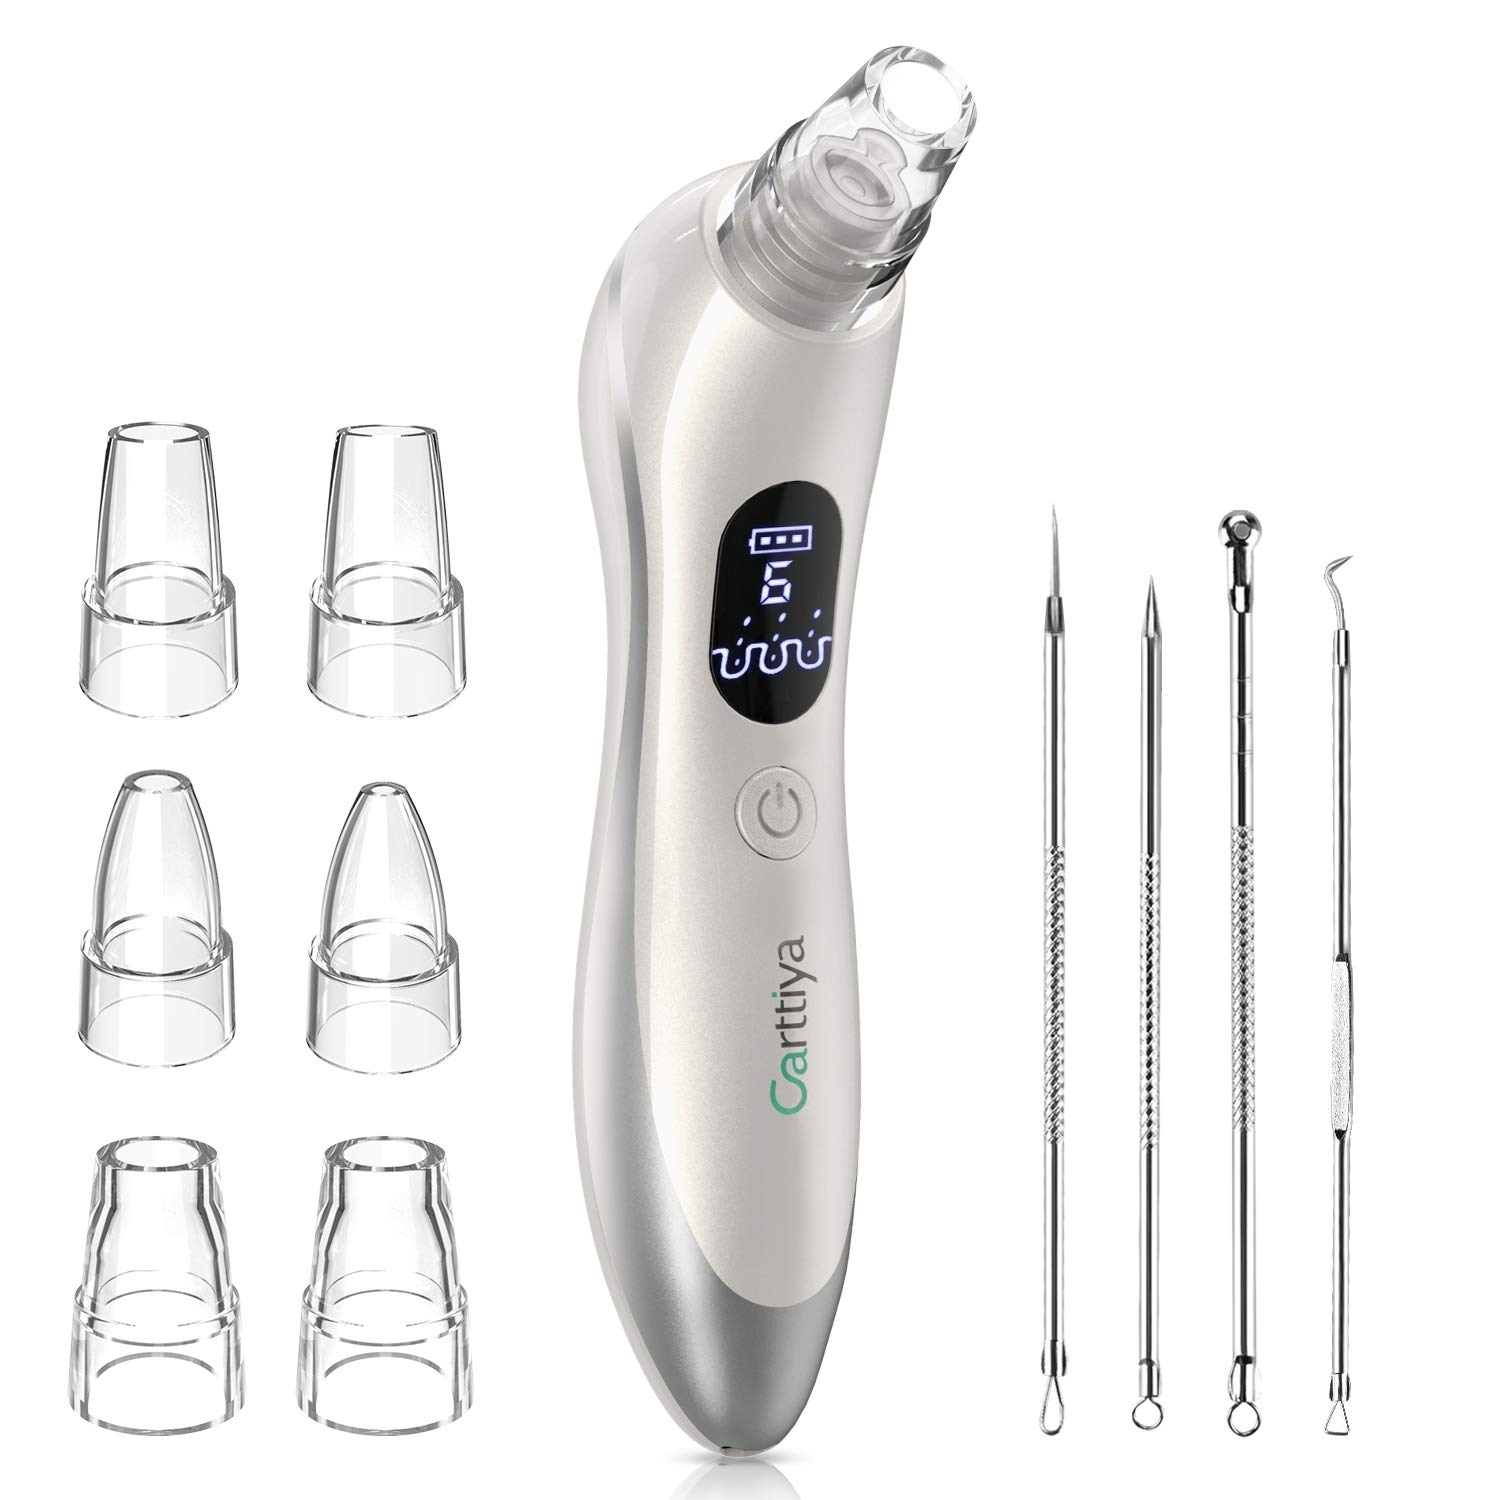 Blackhead Remover, Carttiya Pore Vacuum Cleaner Electric Acne Comedone Extractor with 6 Changeable Probes and 6 Adjustable Suction, LED Display, USB Rechargeable, for Women and Men